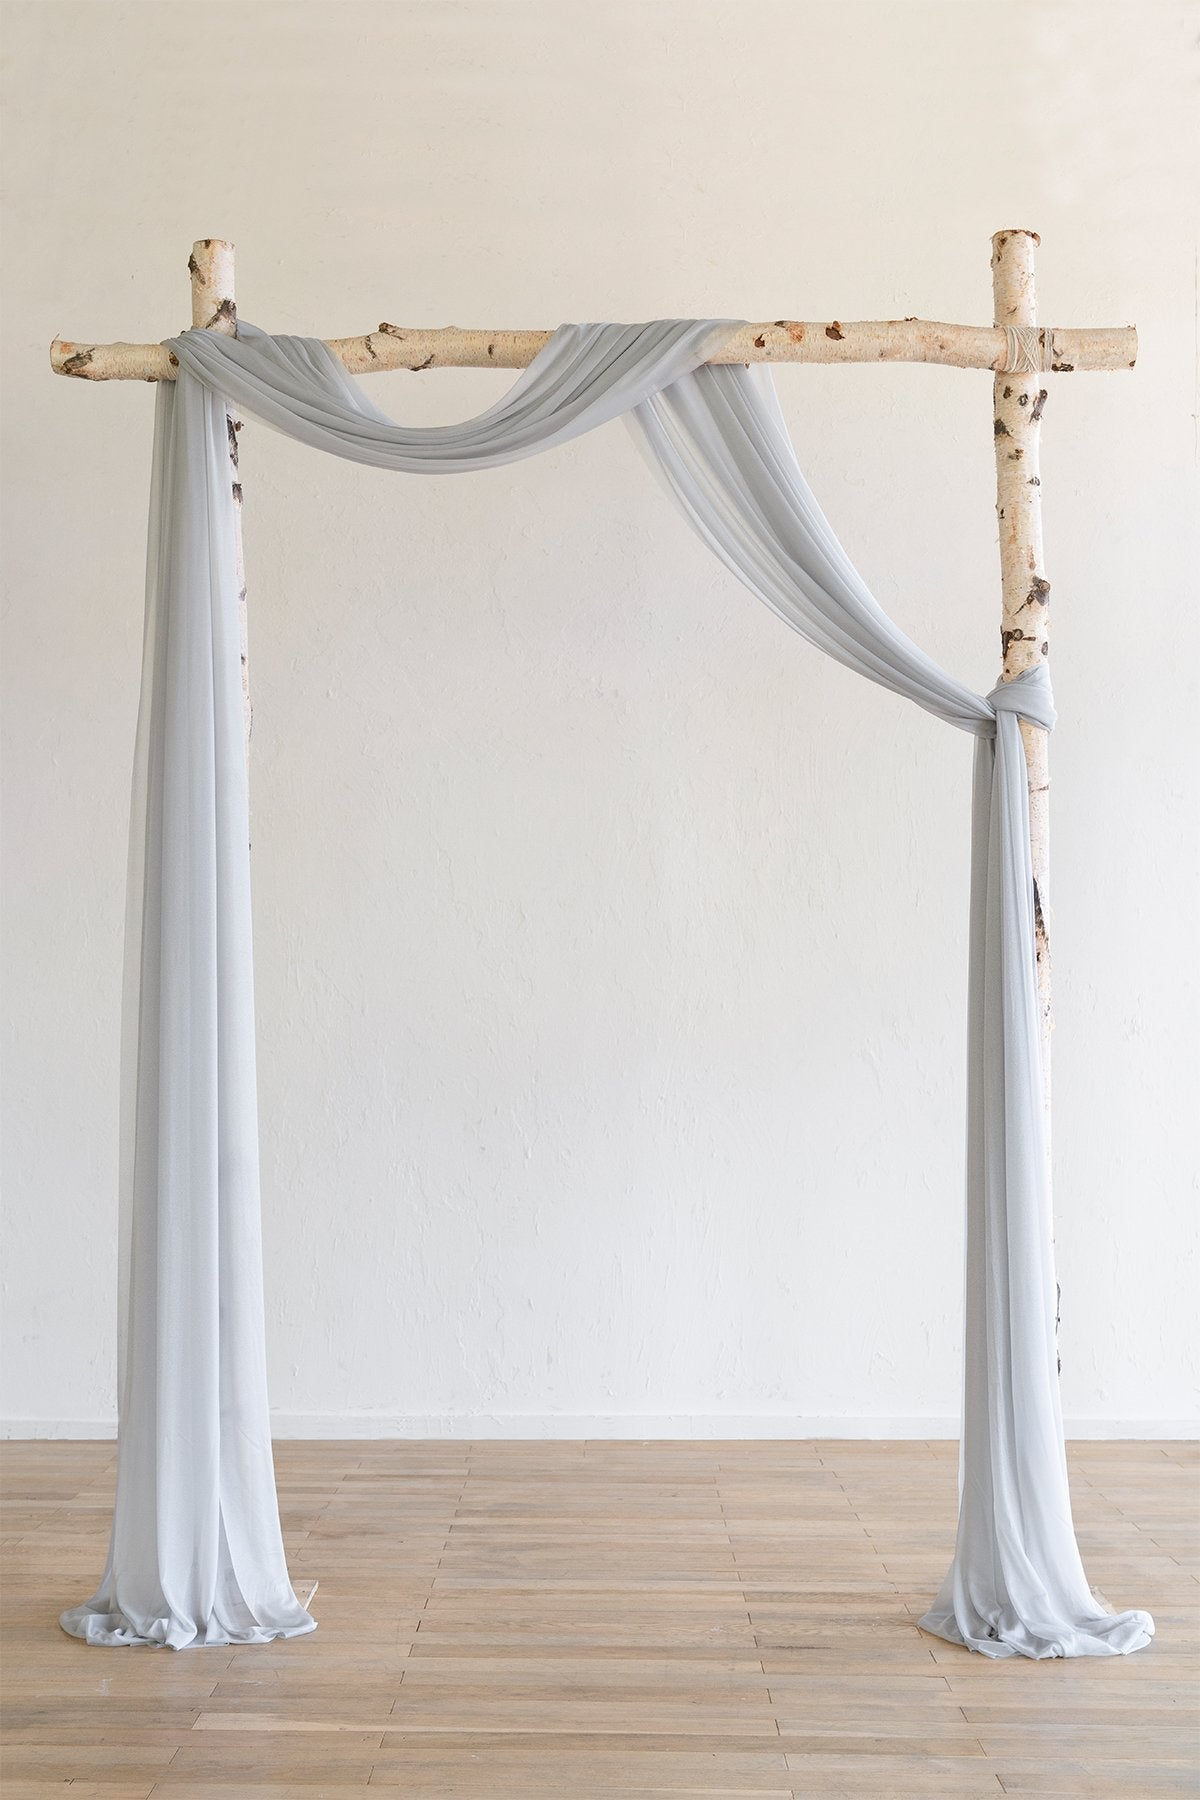 [Ended] Bundle Sale | 20% OFF Arch Garlands + Arch Drape [Code: 2ARC20]